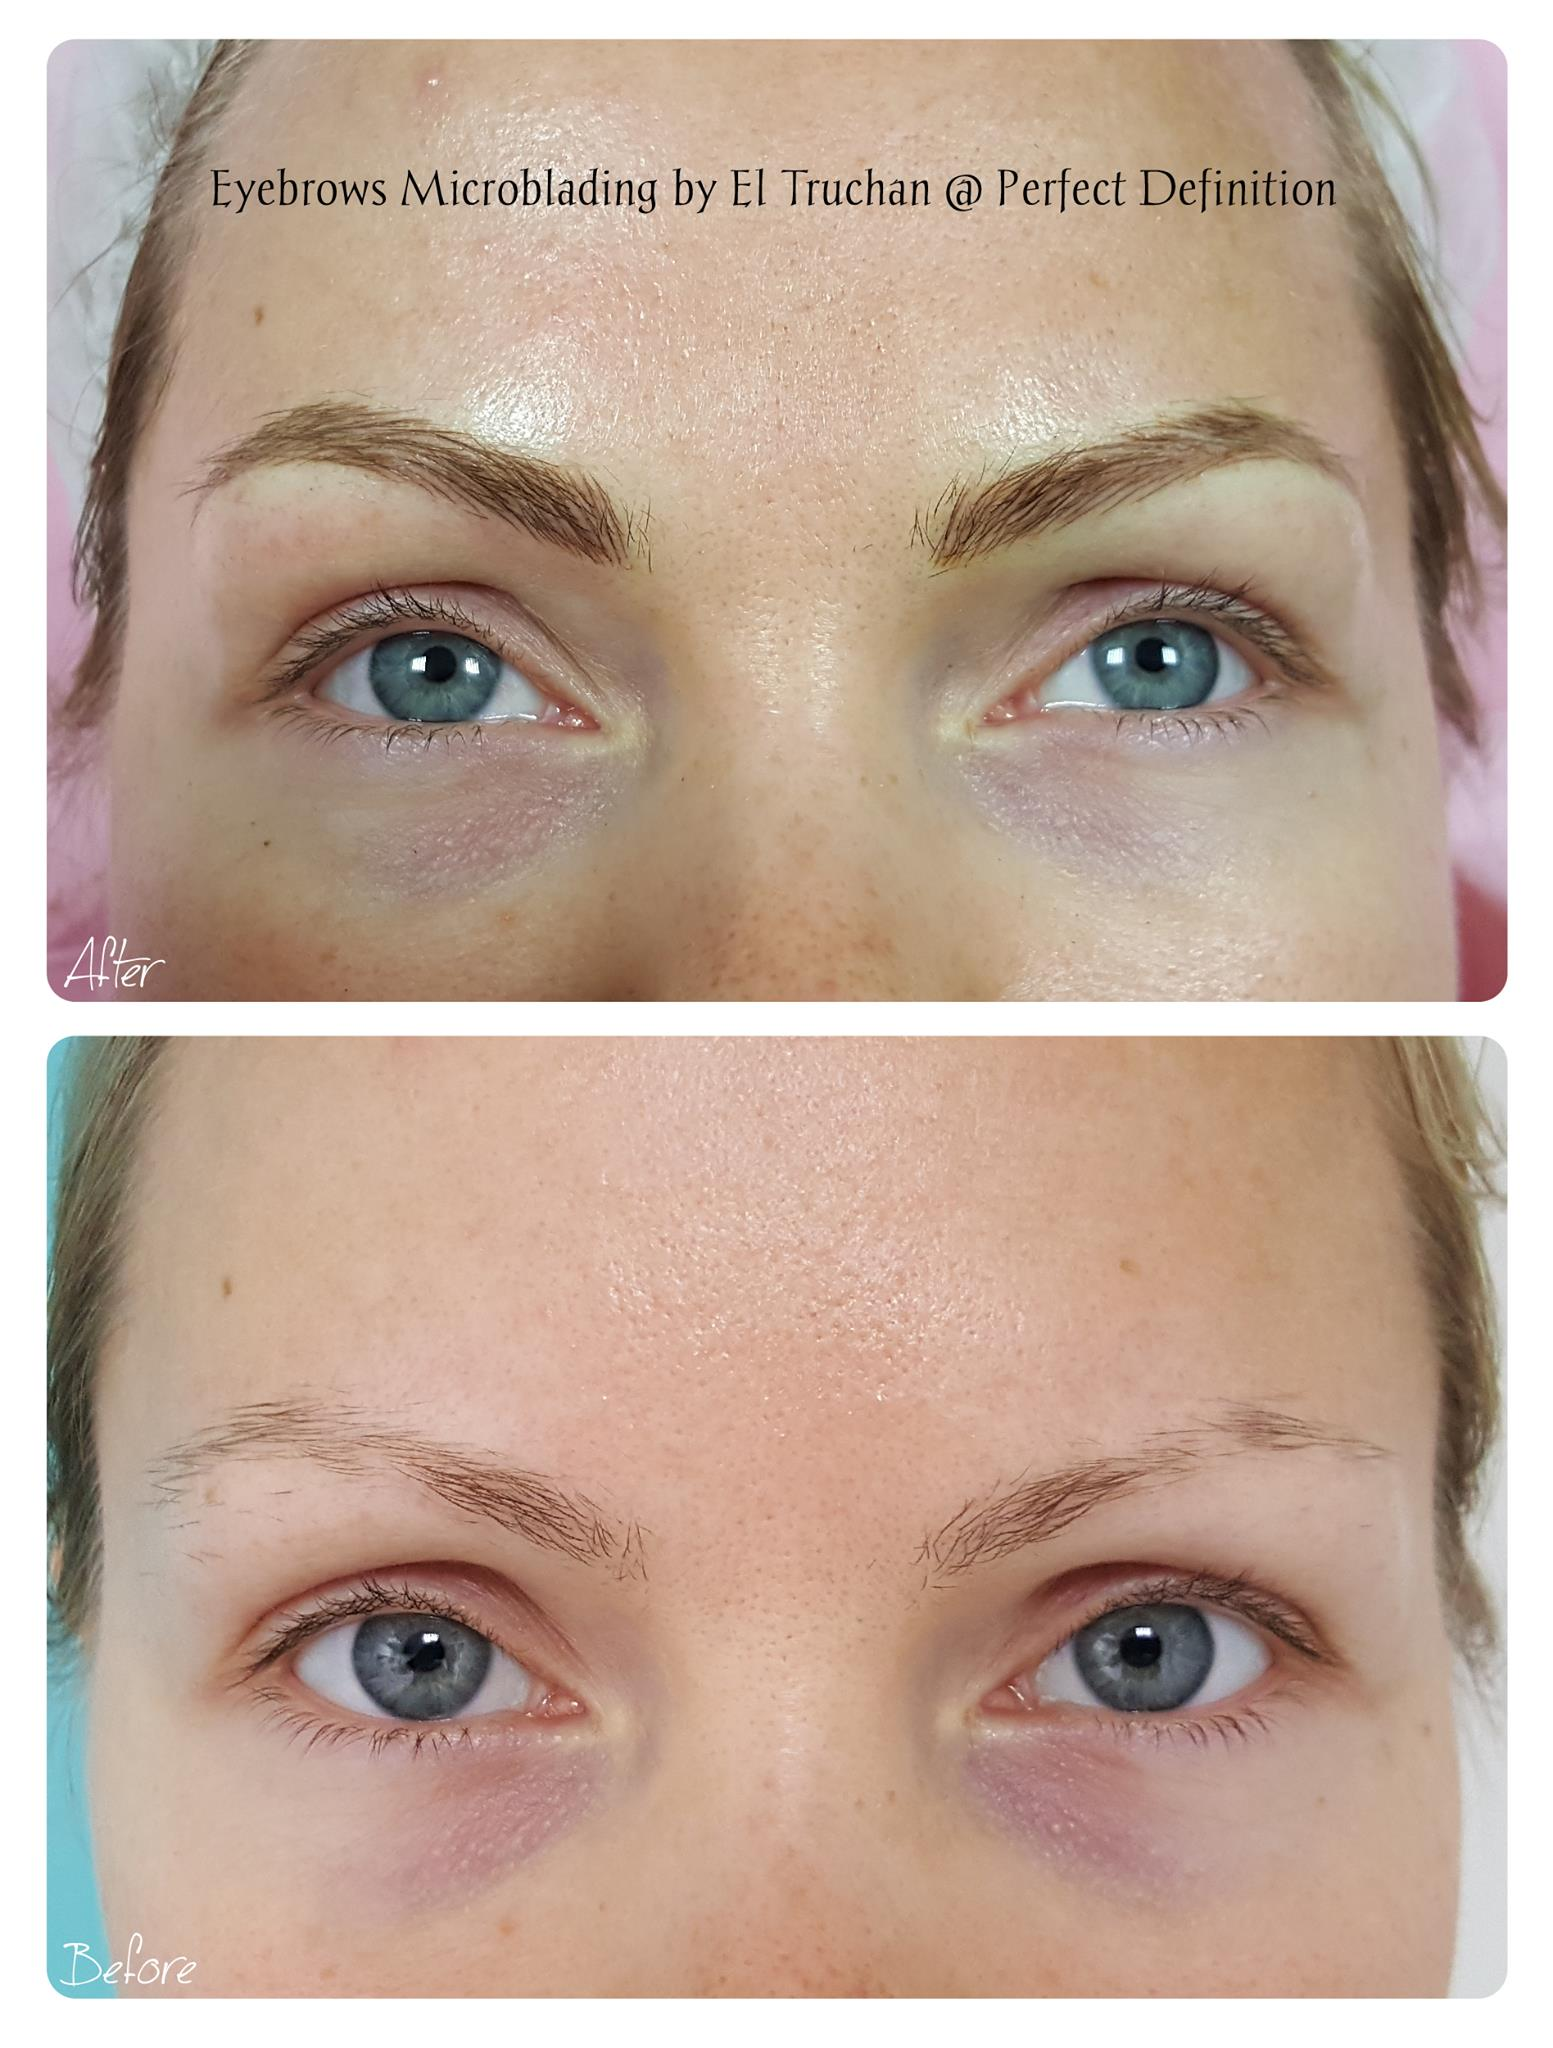 Eyebrows Microblading by El Truchan